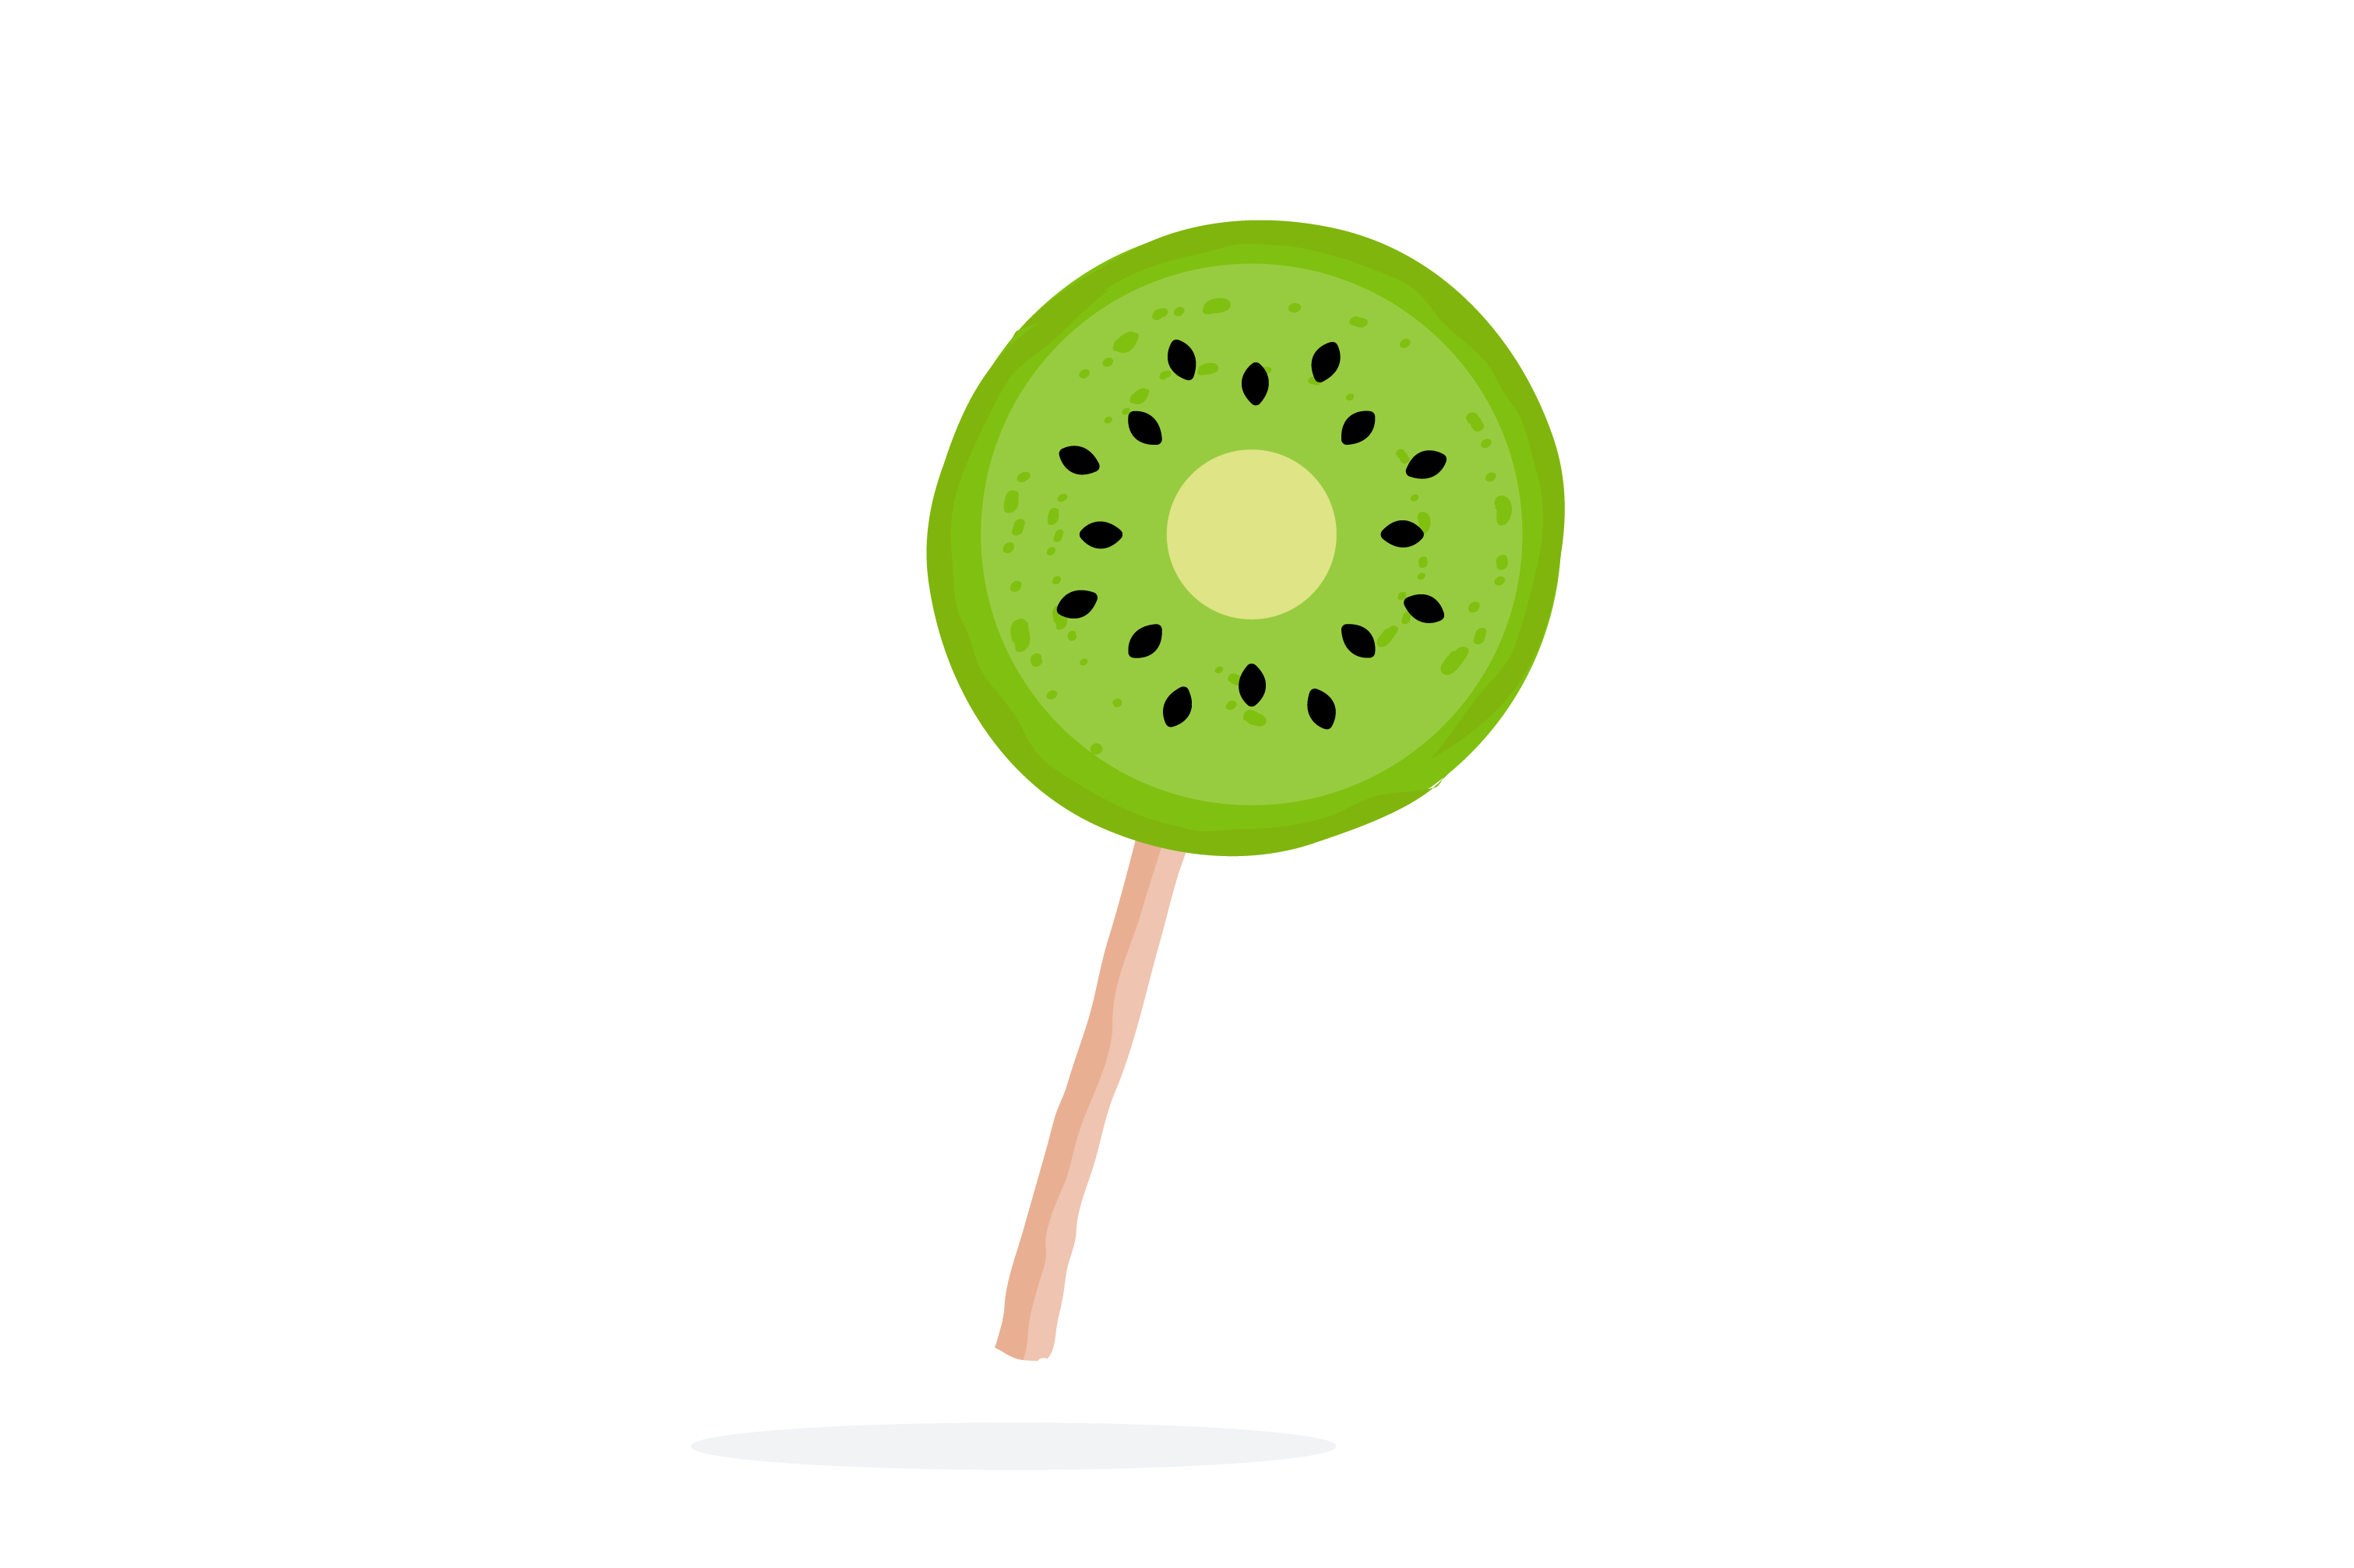 If it tastes good, then it must be bad for you, right? Sadly, there are lots of tempting foods that taste great but do nothing for us nutritionally.  Luckily, the kiwifruit is an exception.